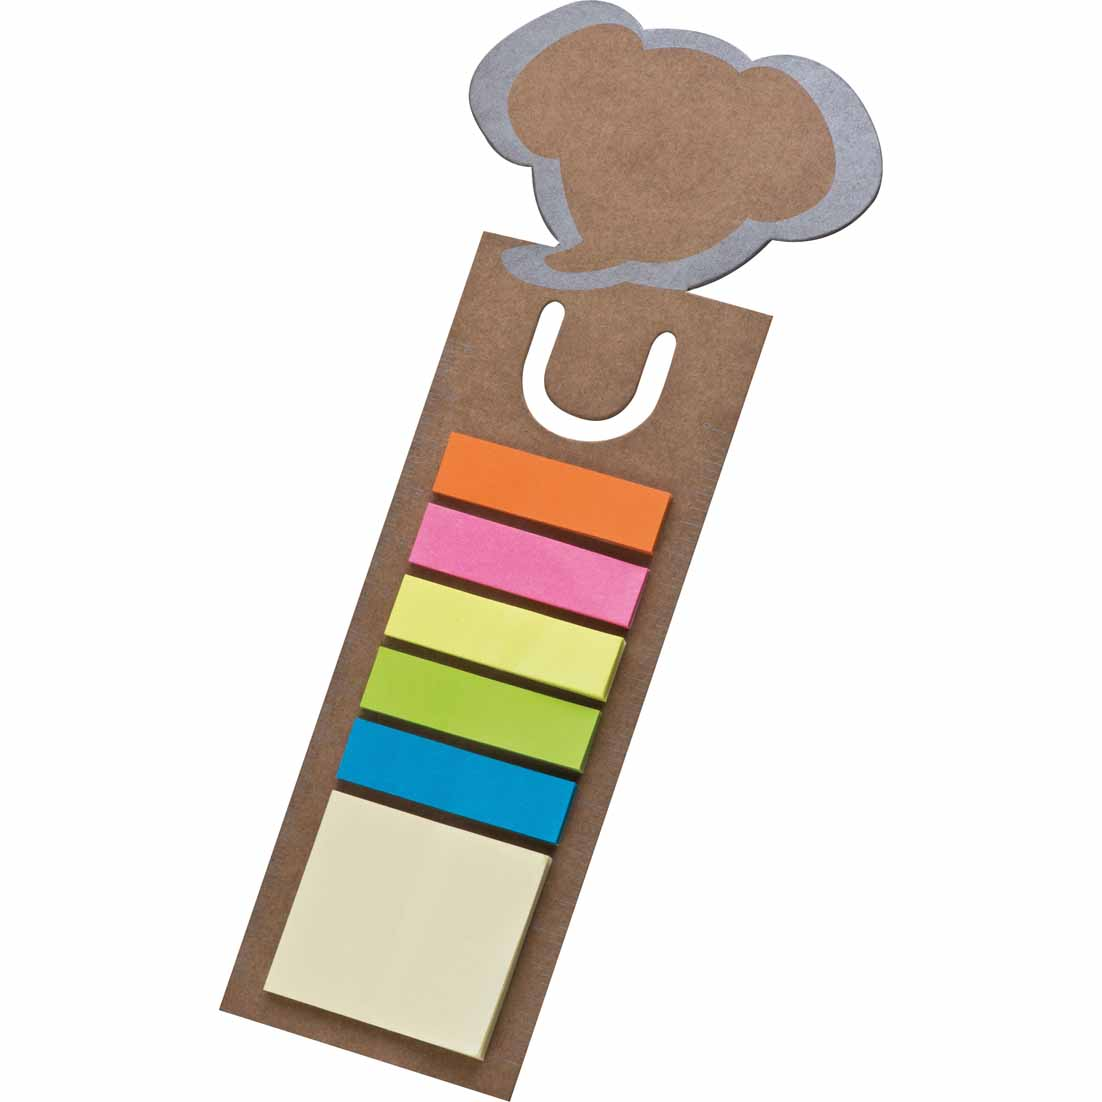 Cute bookmark with elephant head offers five different colours of memo strips cr-152